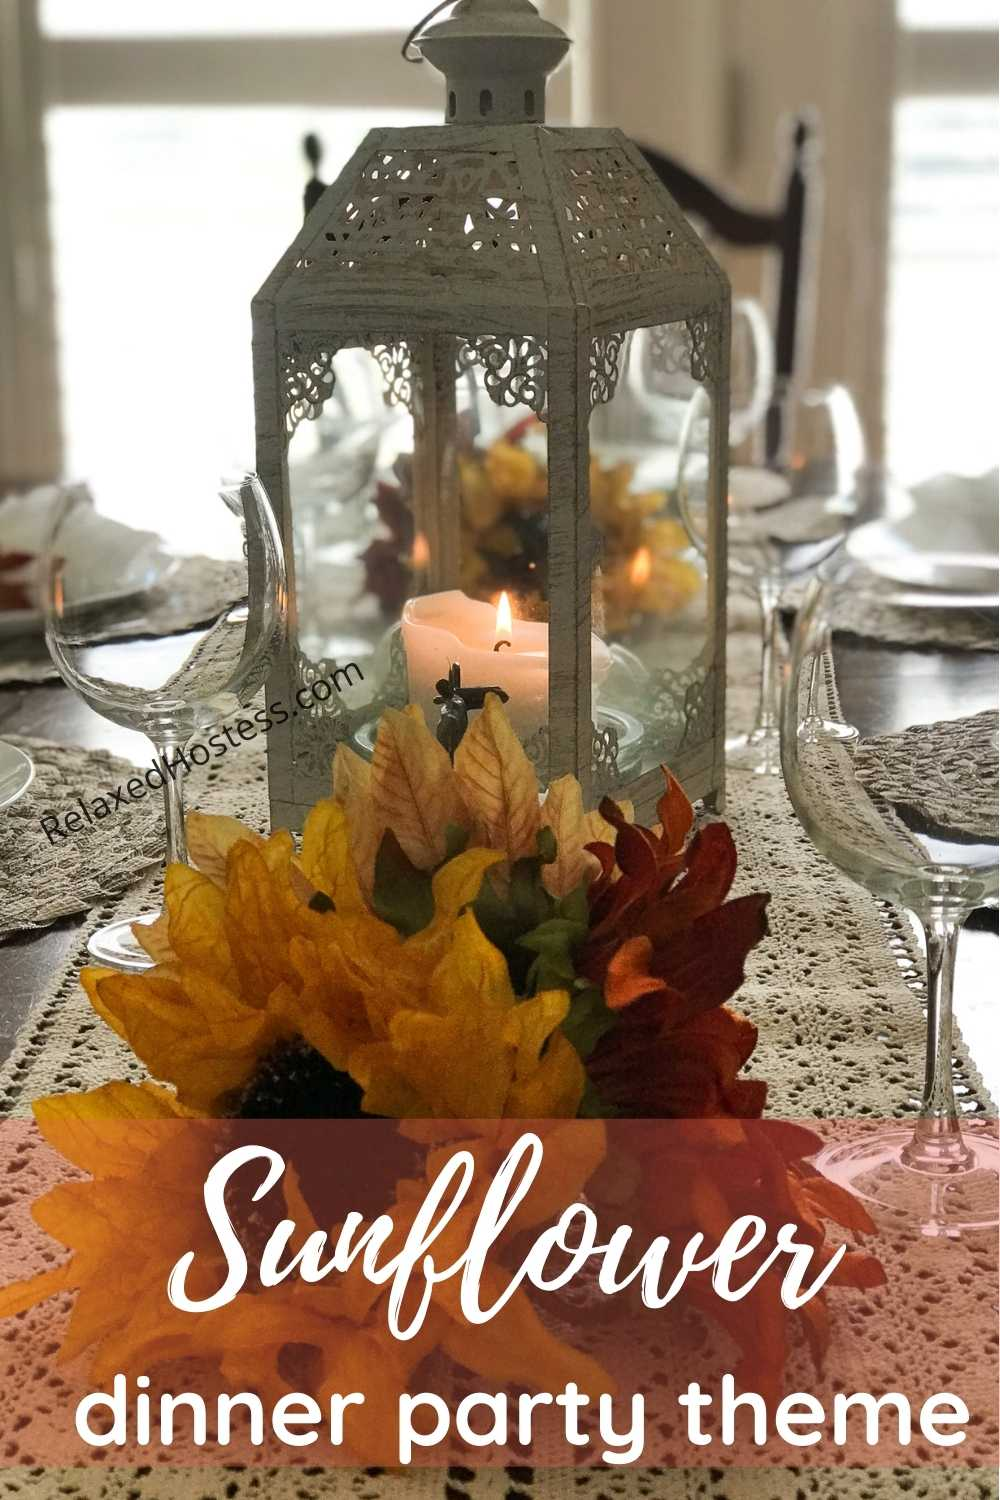 Sunflower Dinner Party Theme. A beige table runner, two sunflower arrangements, white-washed lantern